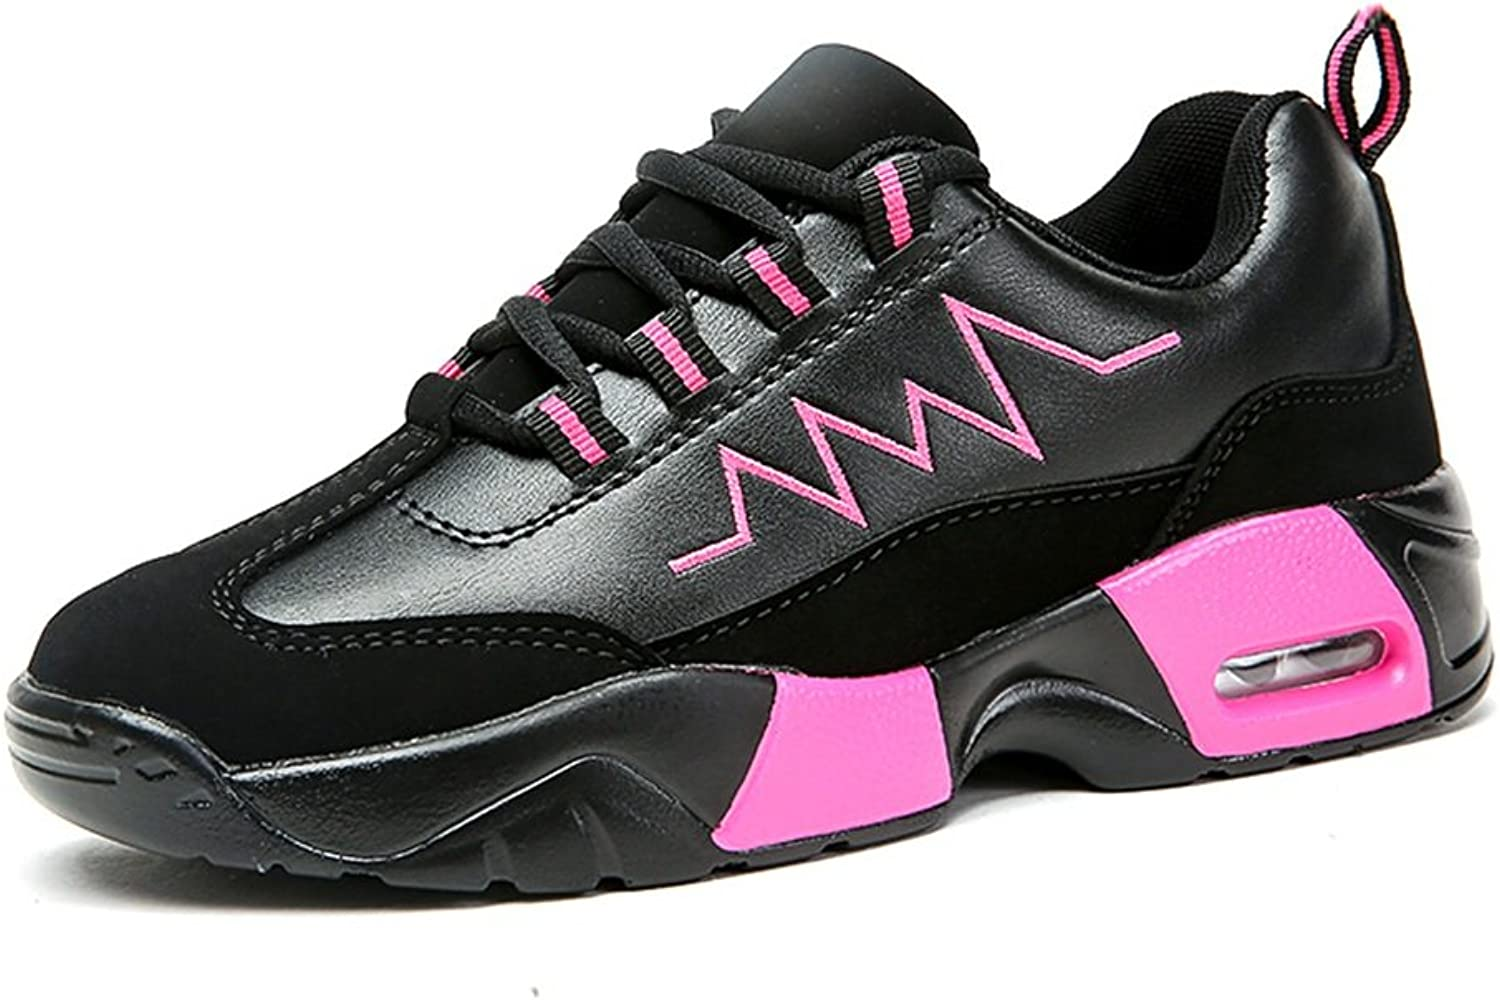 Battle Men Women and Men's Outdoor Flat Heel Sneaker Lace up Athletic Casual shoes Up to Size 47 Fashion (color   Black Pink, Size   6.5 D(M) US)